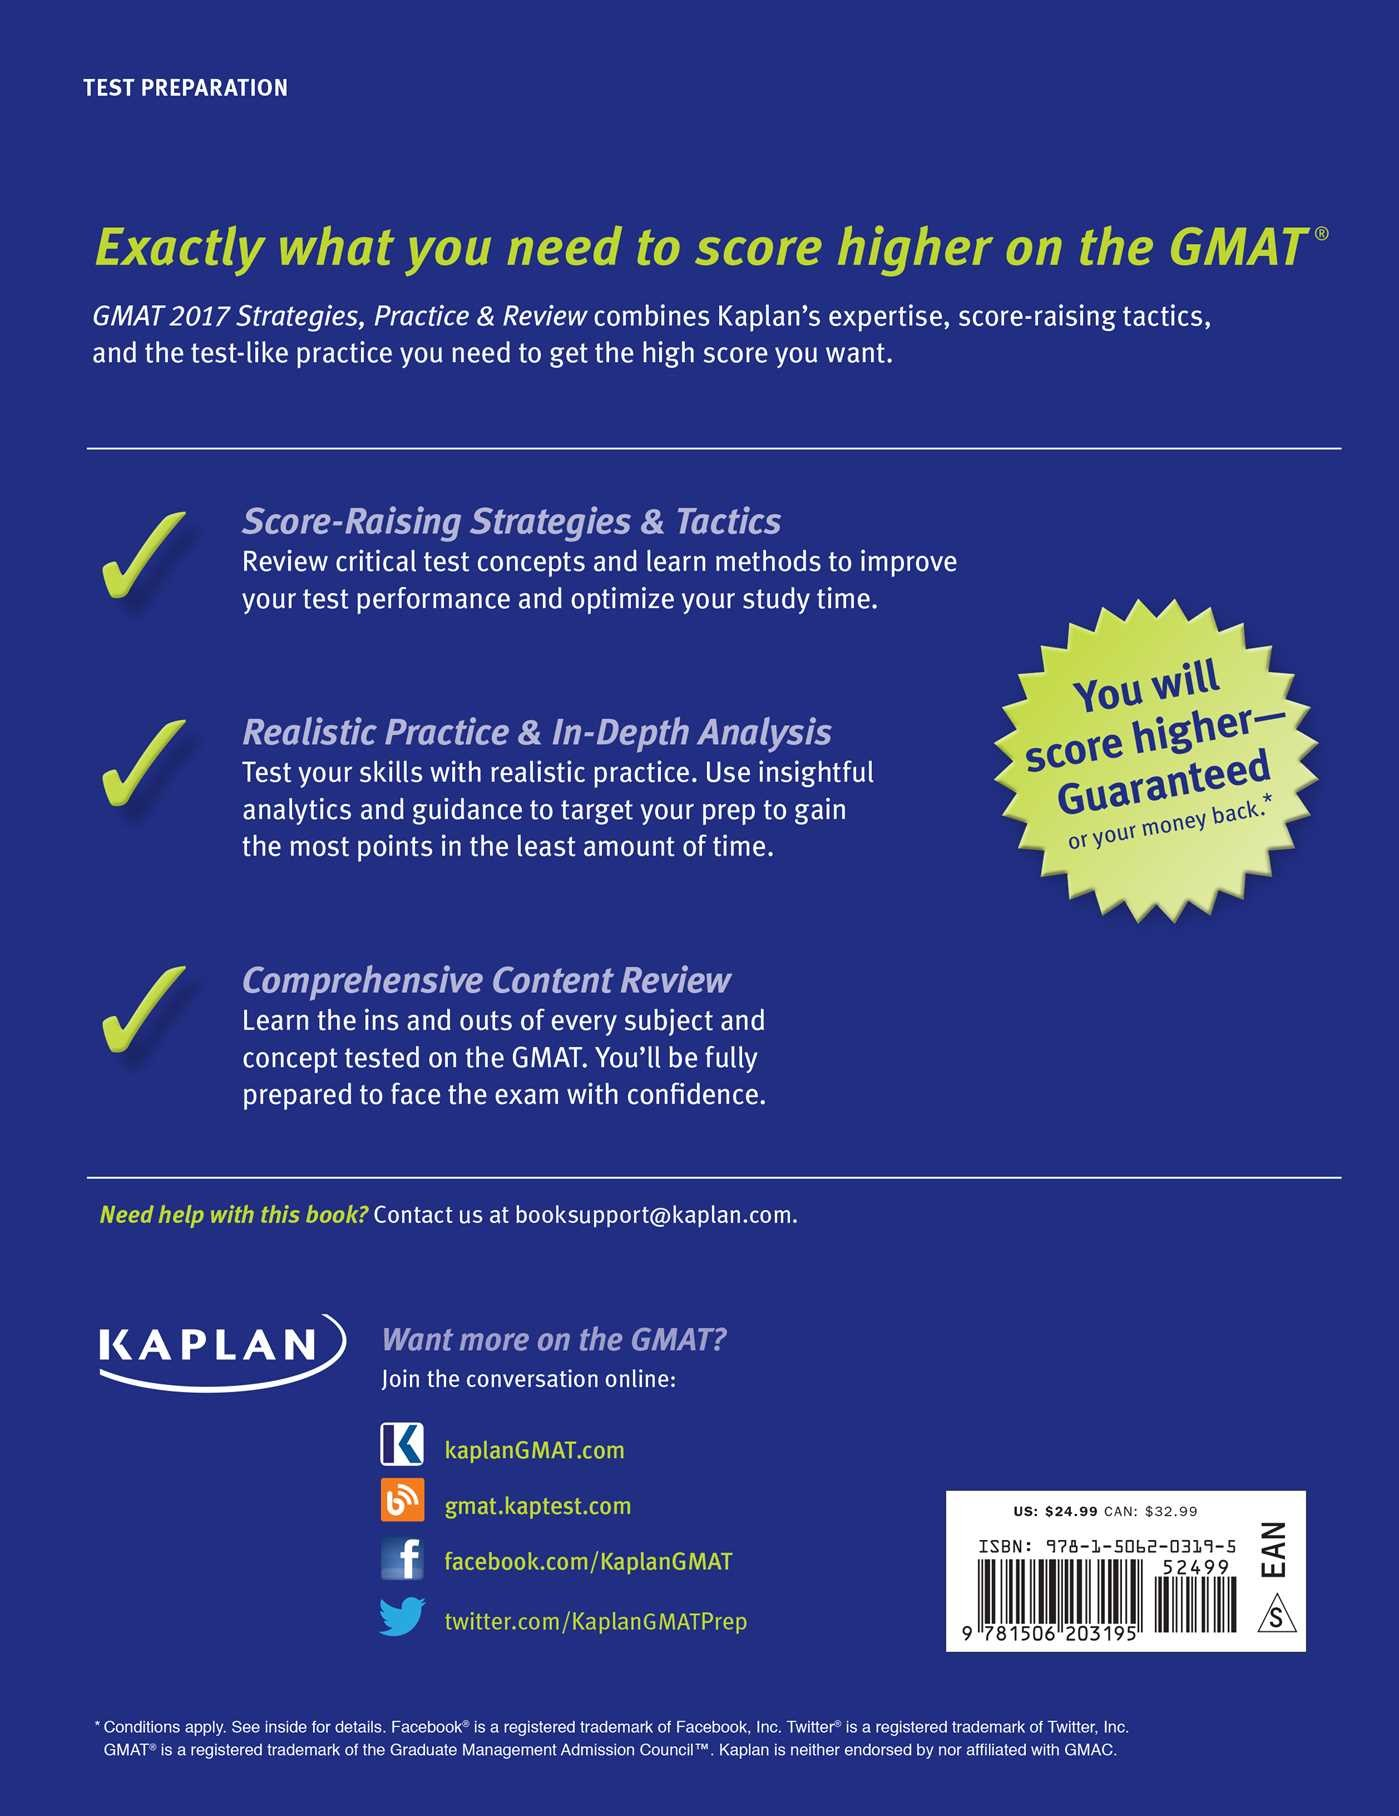 gmat testing strategies Gmat verbal tips be sure to check out our gmat verbal tips and strategies to improve your score on this section of the gmat we've compiled our top 20 gmat verbal tips and strategies for your review.